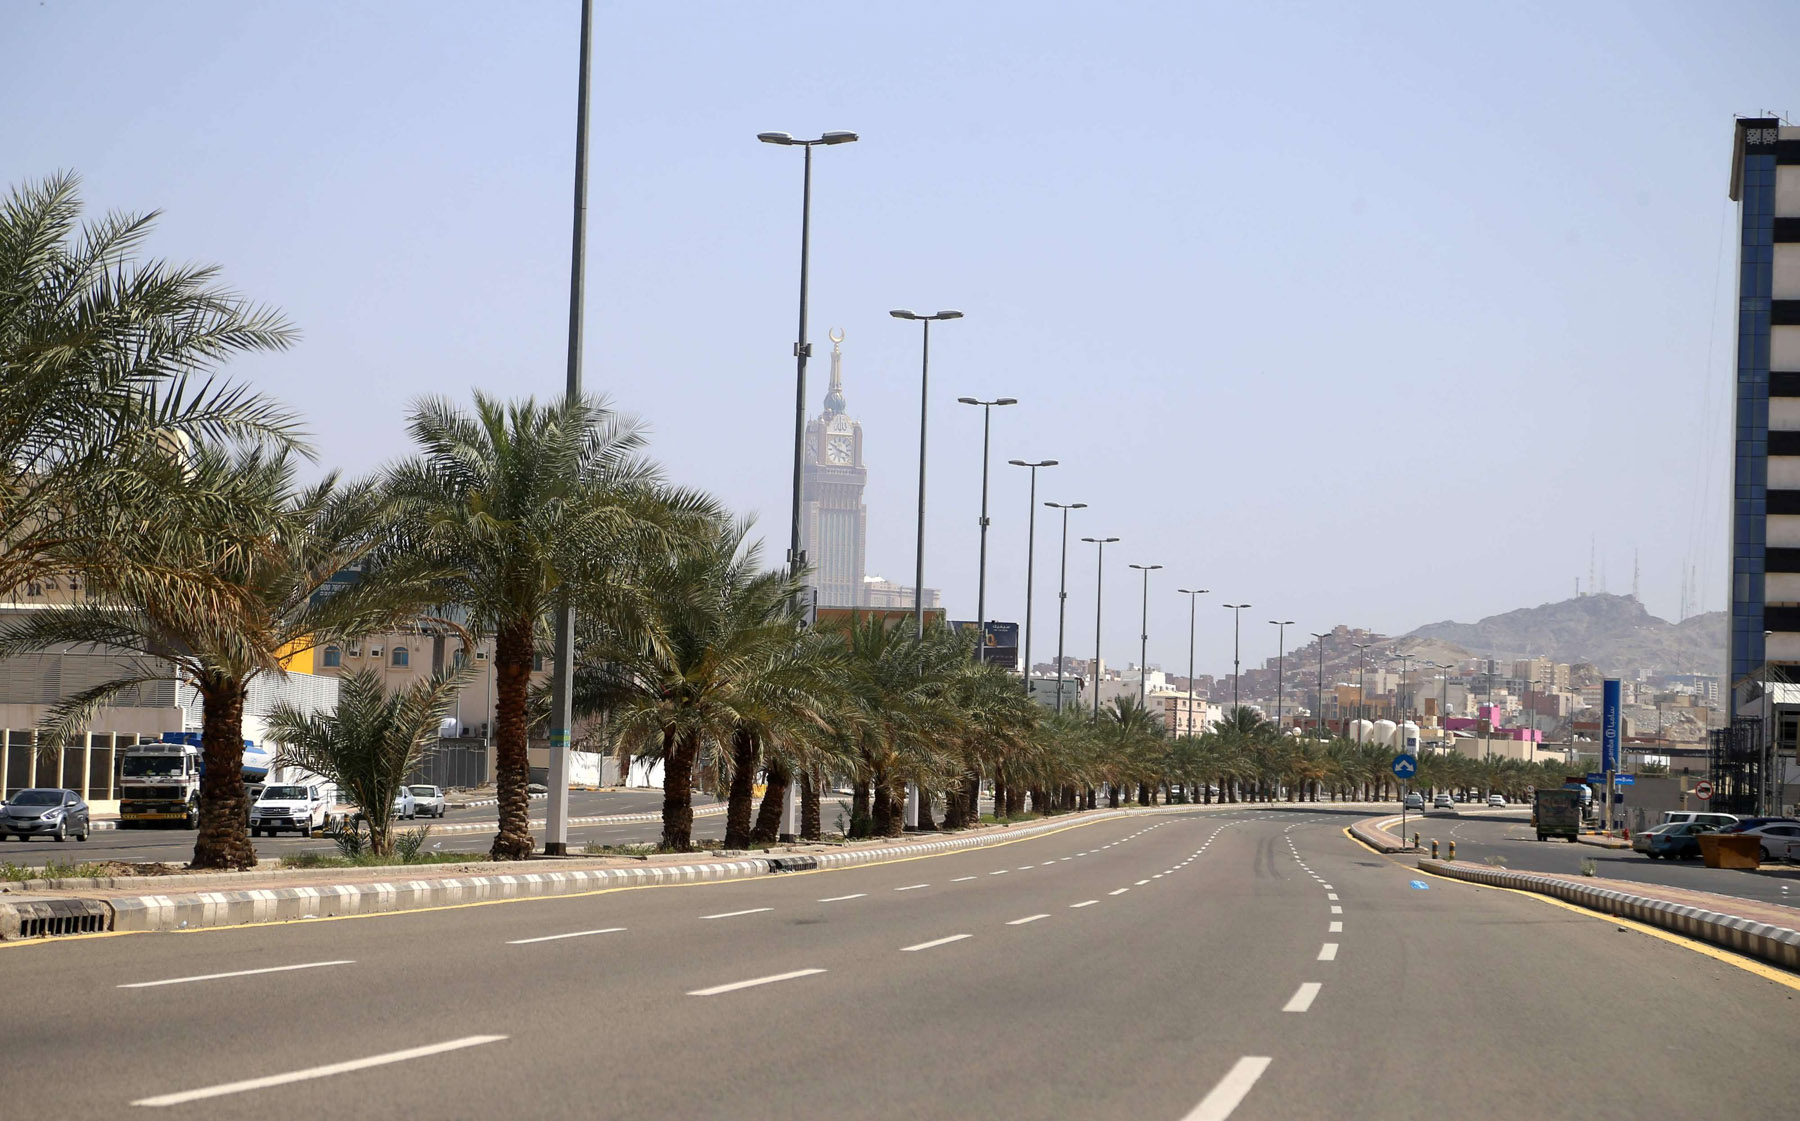 A picture shows an empty street in Saudi Arabia's holy city of Mecca during the pandemic lock-down. (AFP)